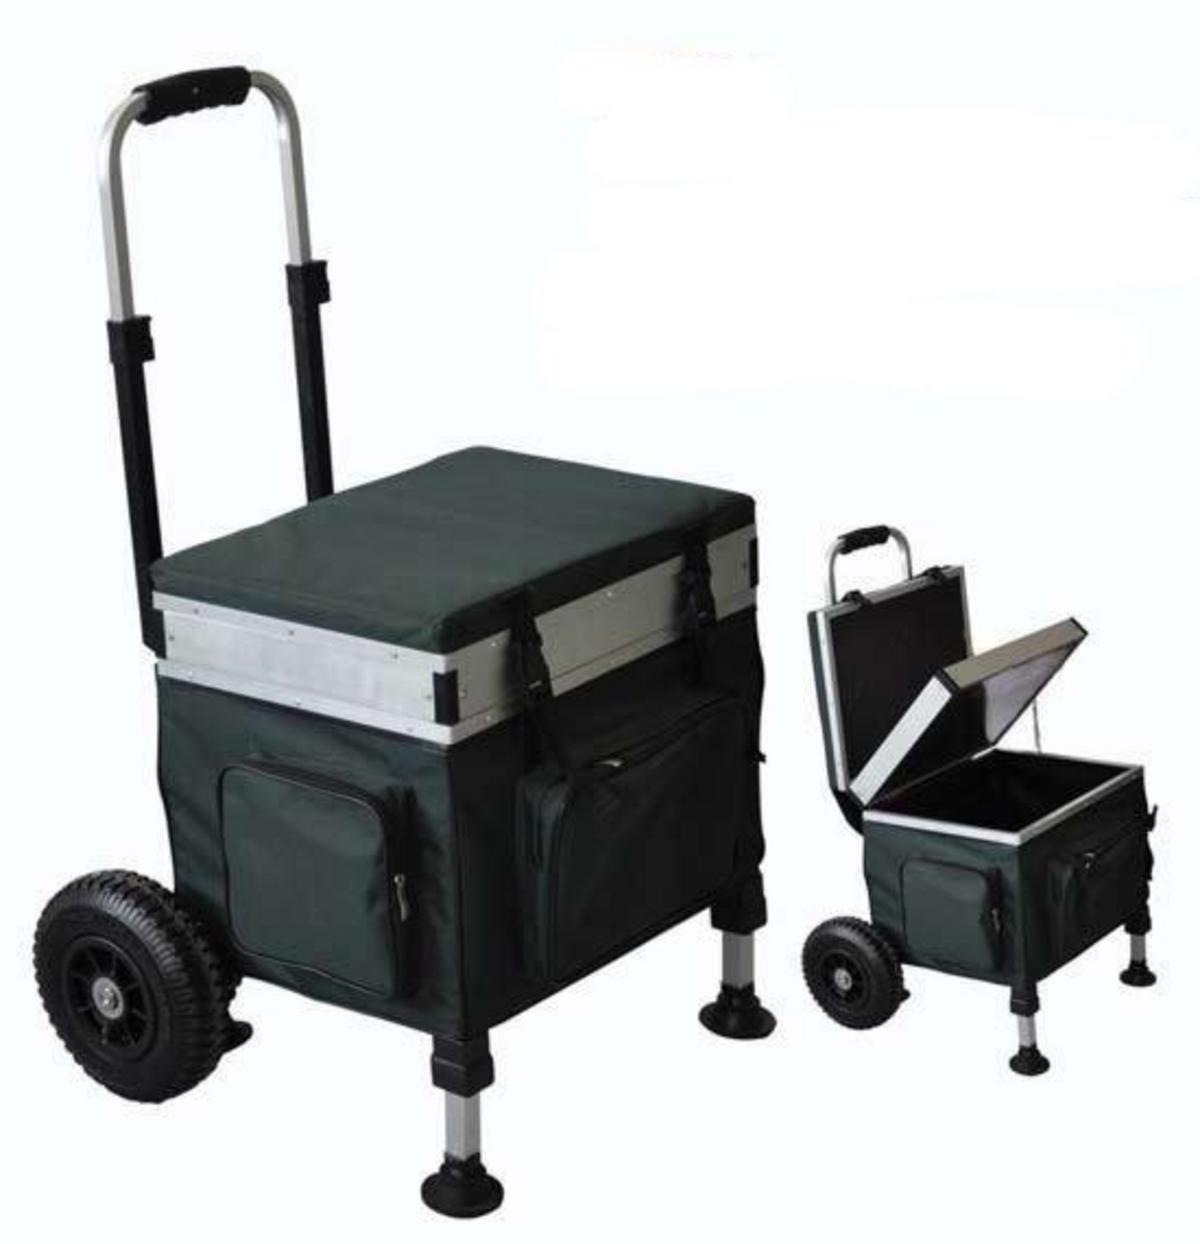 Support Shpock Fishing Seat Box With Wheels - Image Of Fishing Magimages.co